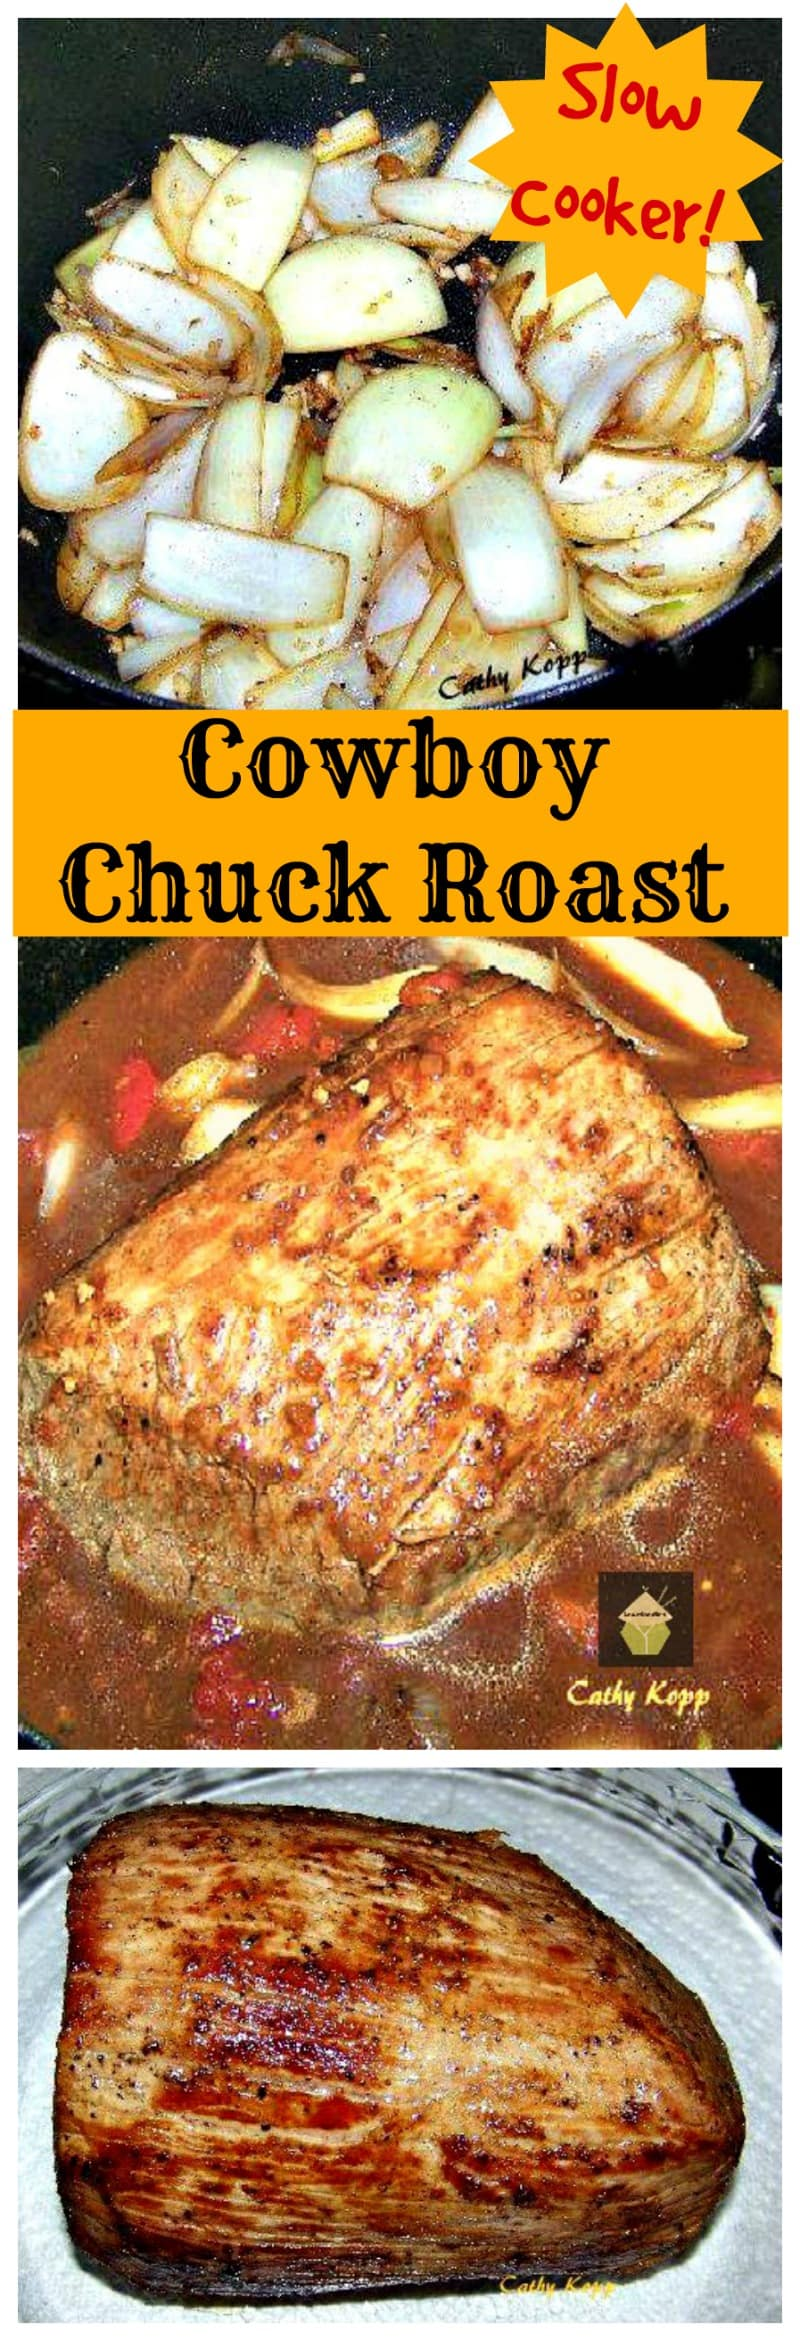 Cowboy Chuck Roast A super easy and great tasting dinner! Slow cooker too!